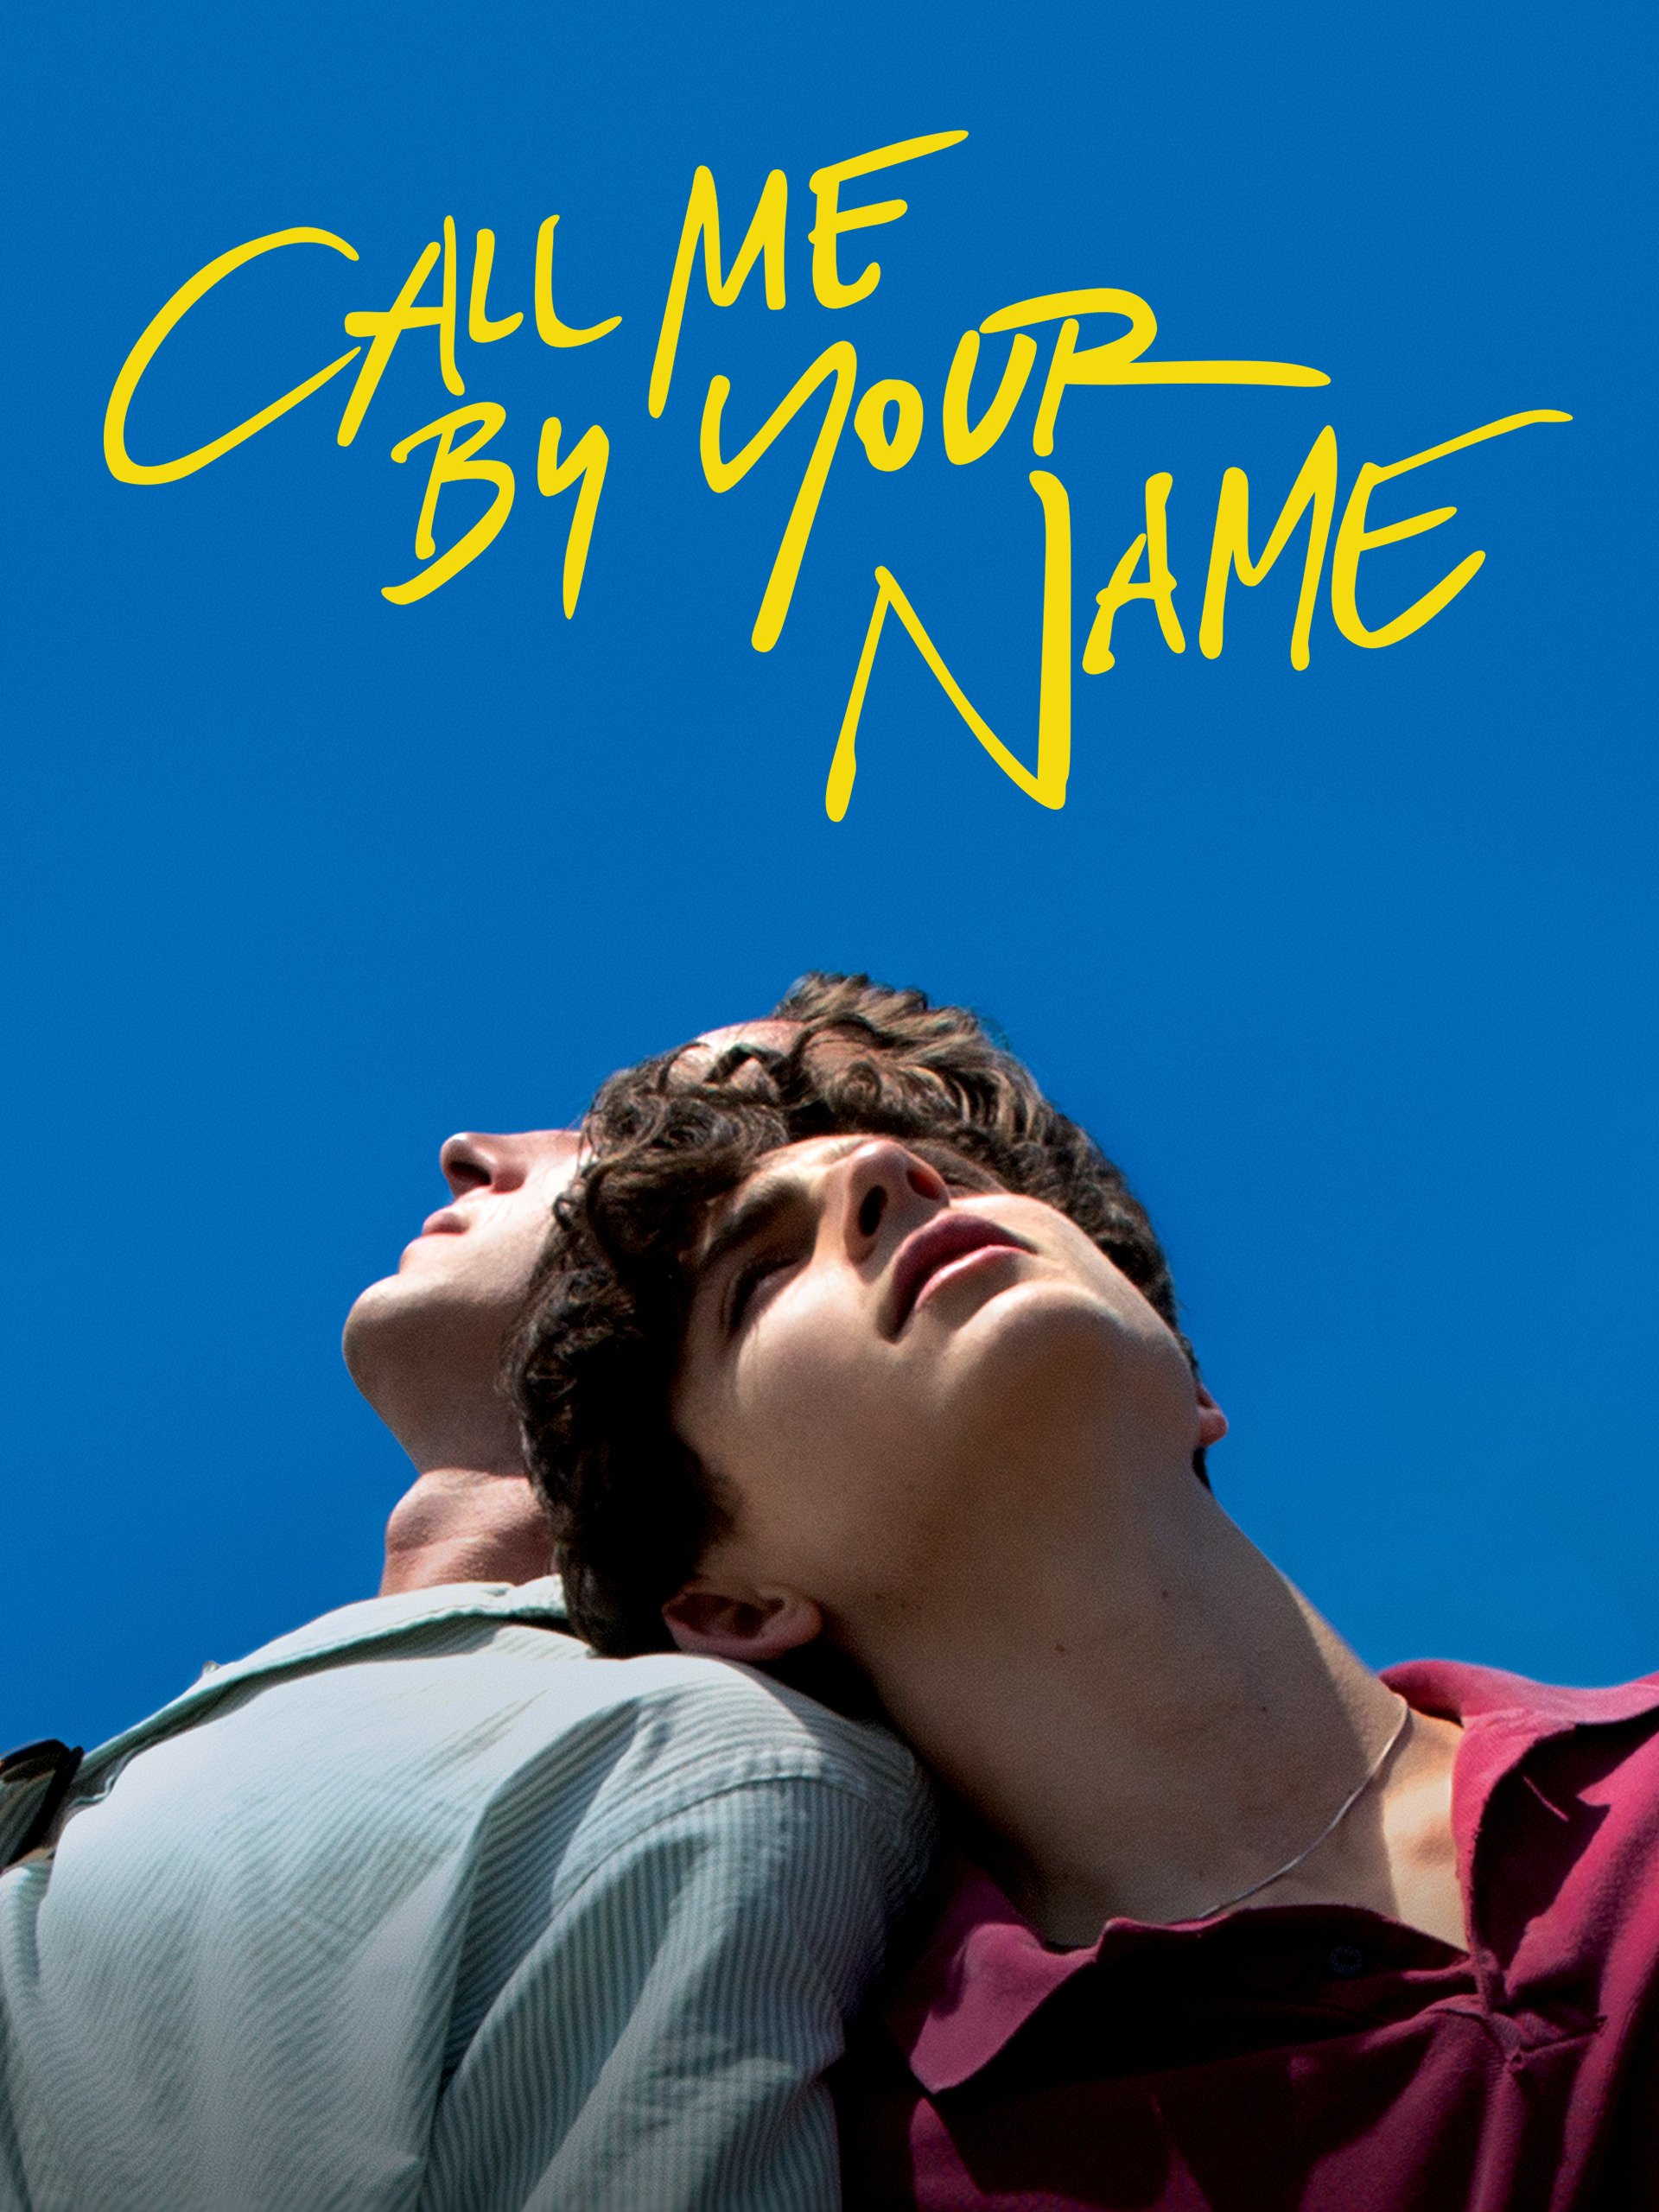 Amazon.com: Call Me By Your Name: Armie Hammer, Michael Stuhlbarg ...